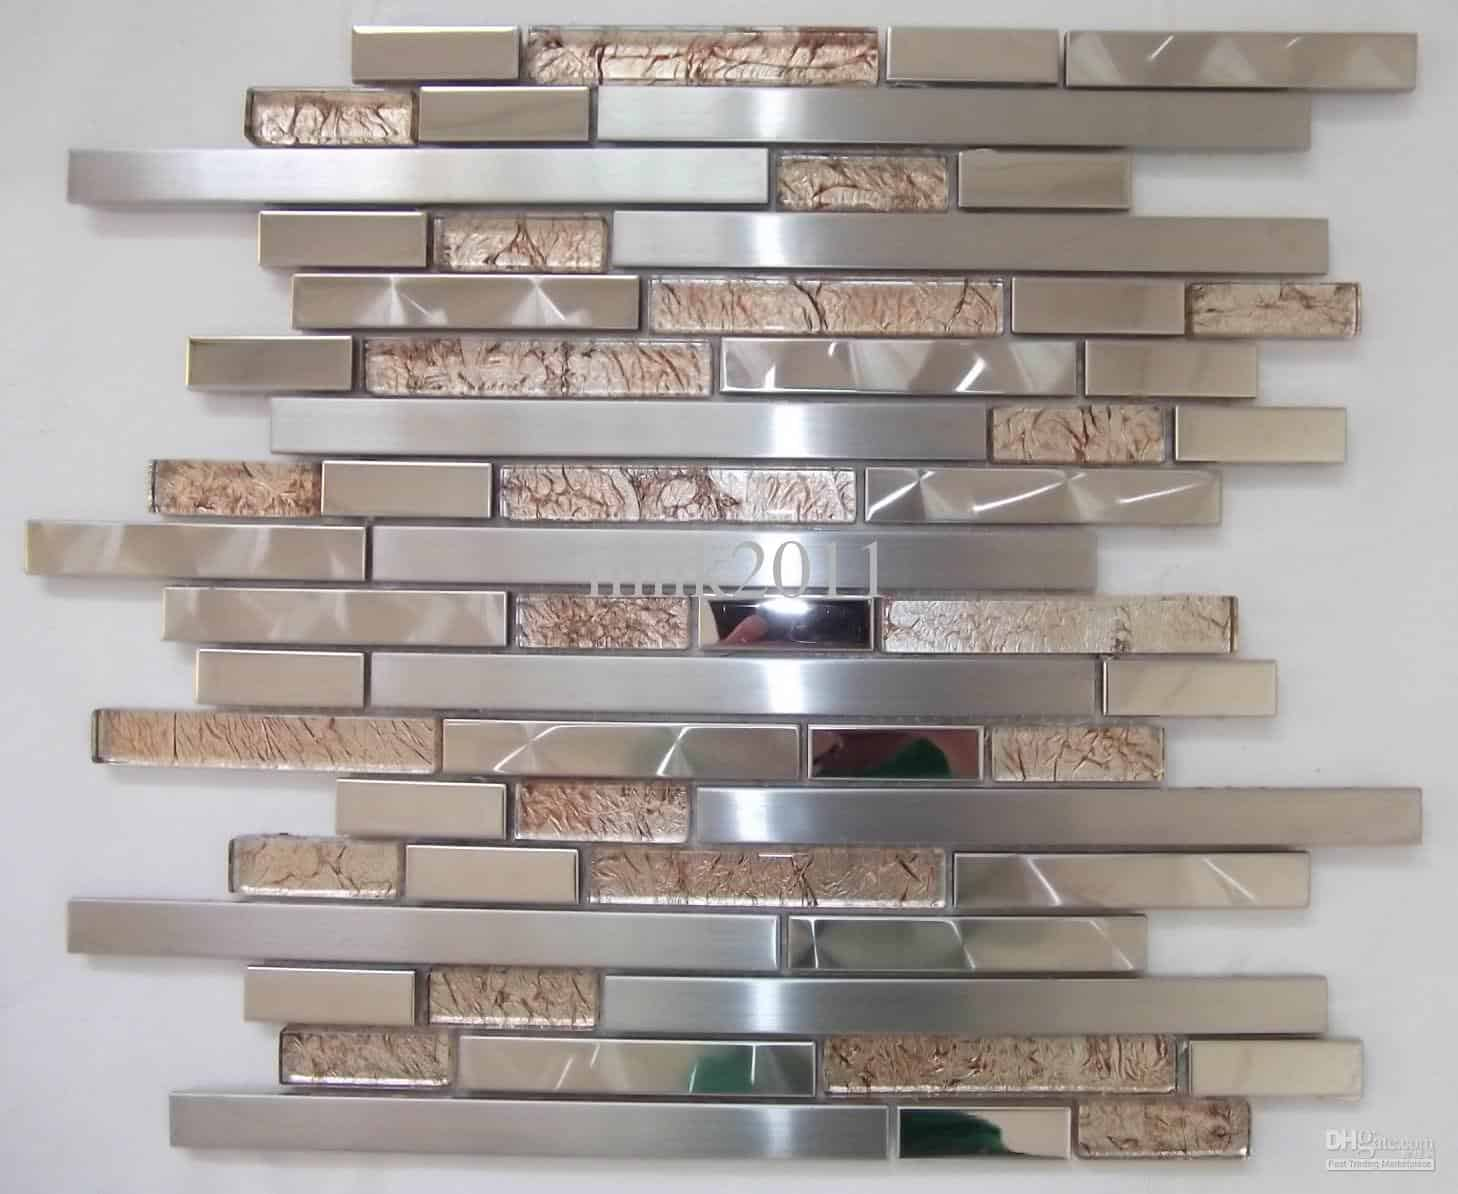 stainless steel tiles home design - Metal Tile Home 2015